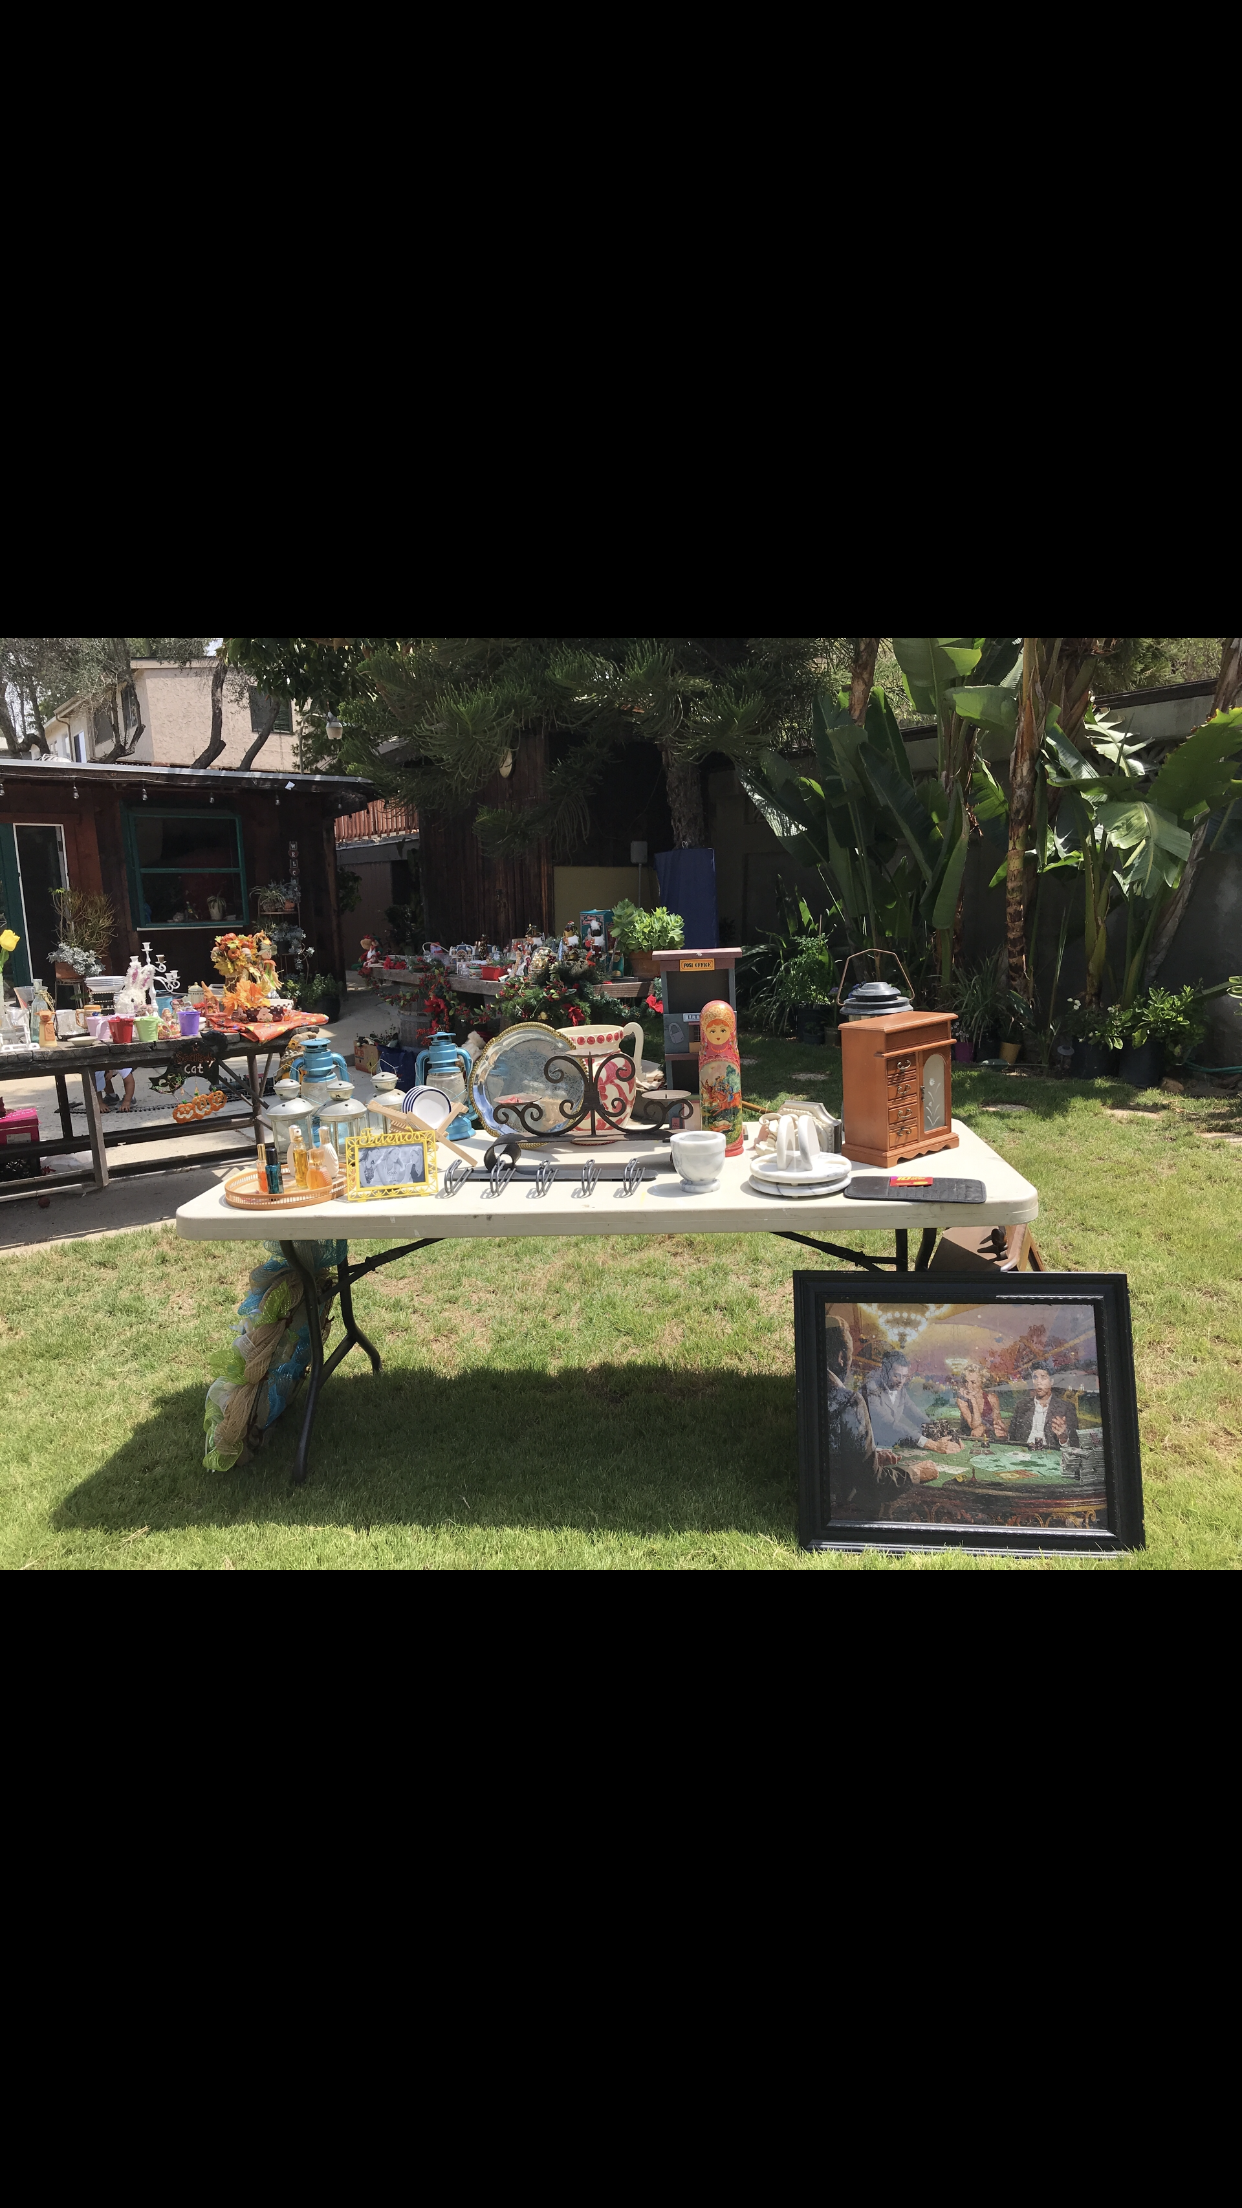 TOO • MUCH • STUFF • YARD SALE